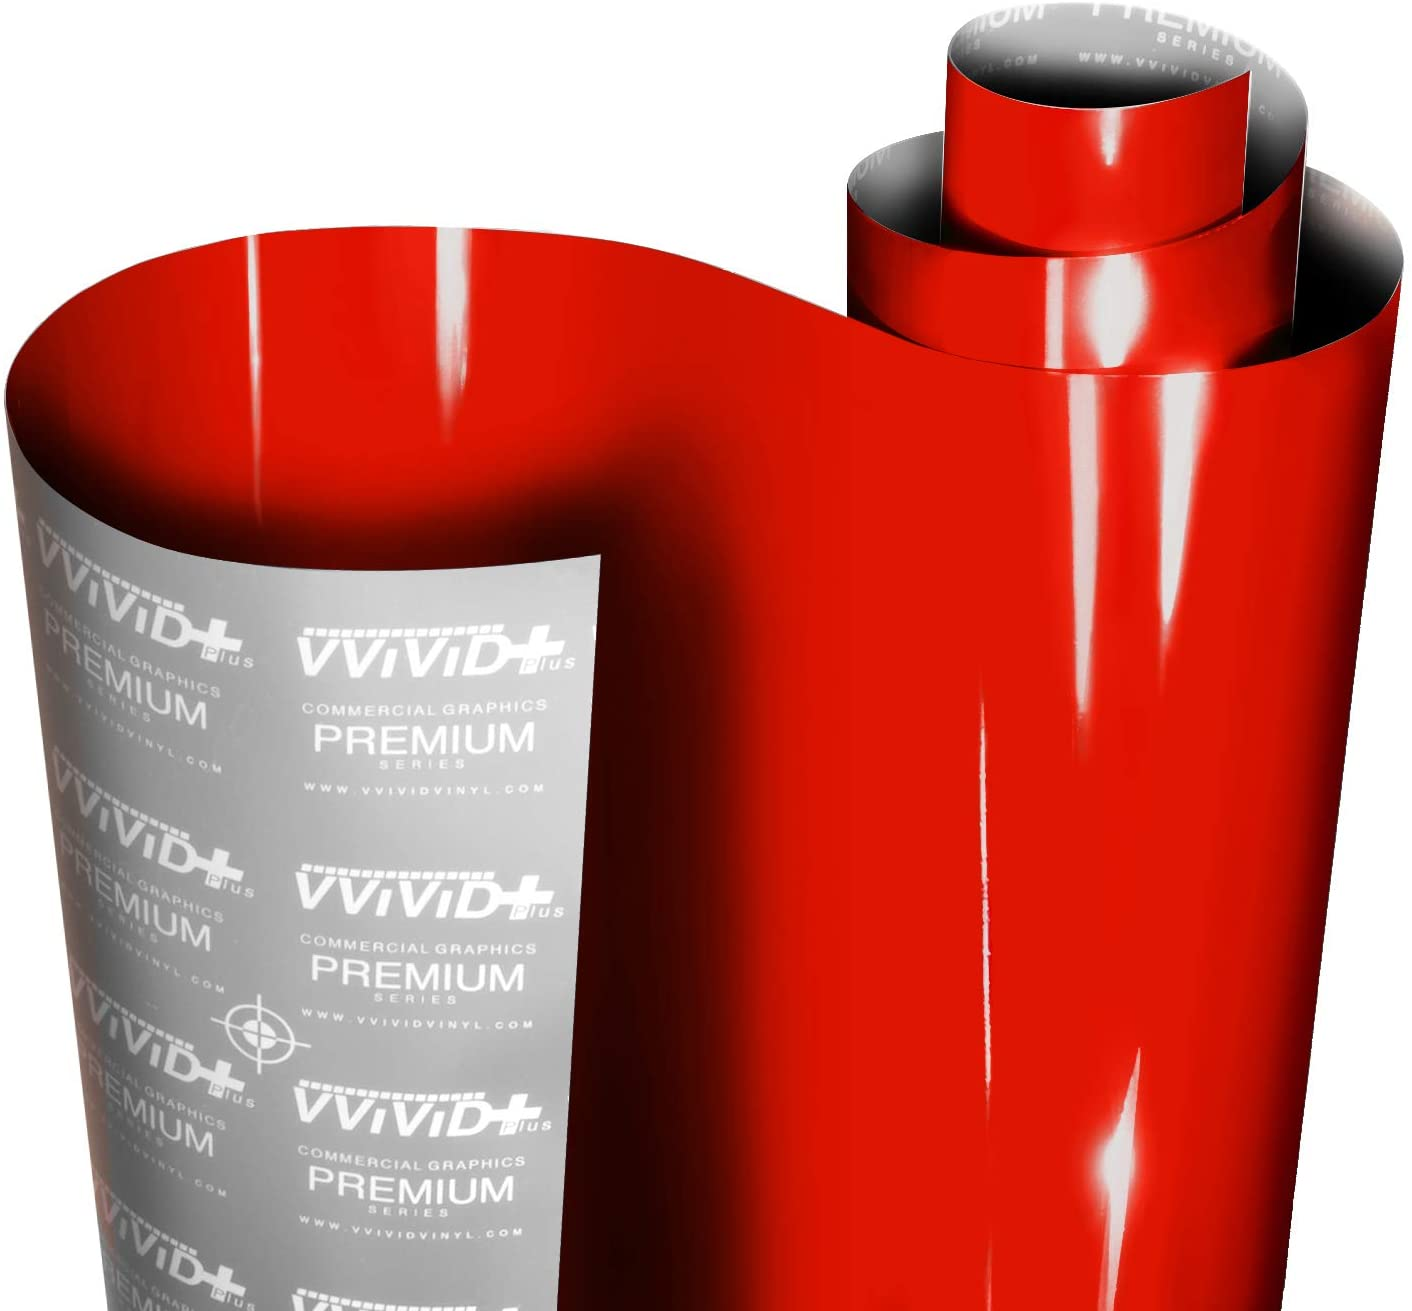 VViViD+ Ultra Gloss Racing Red Vinyl Car Wrap Premium Paint Replacement Film Roll With Nano Air Release Technology Indoor Outdoor 1ft x 54 Stretchable Protective Cap Liner Self Adhesive